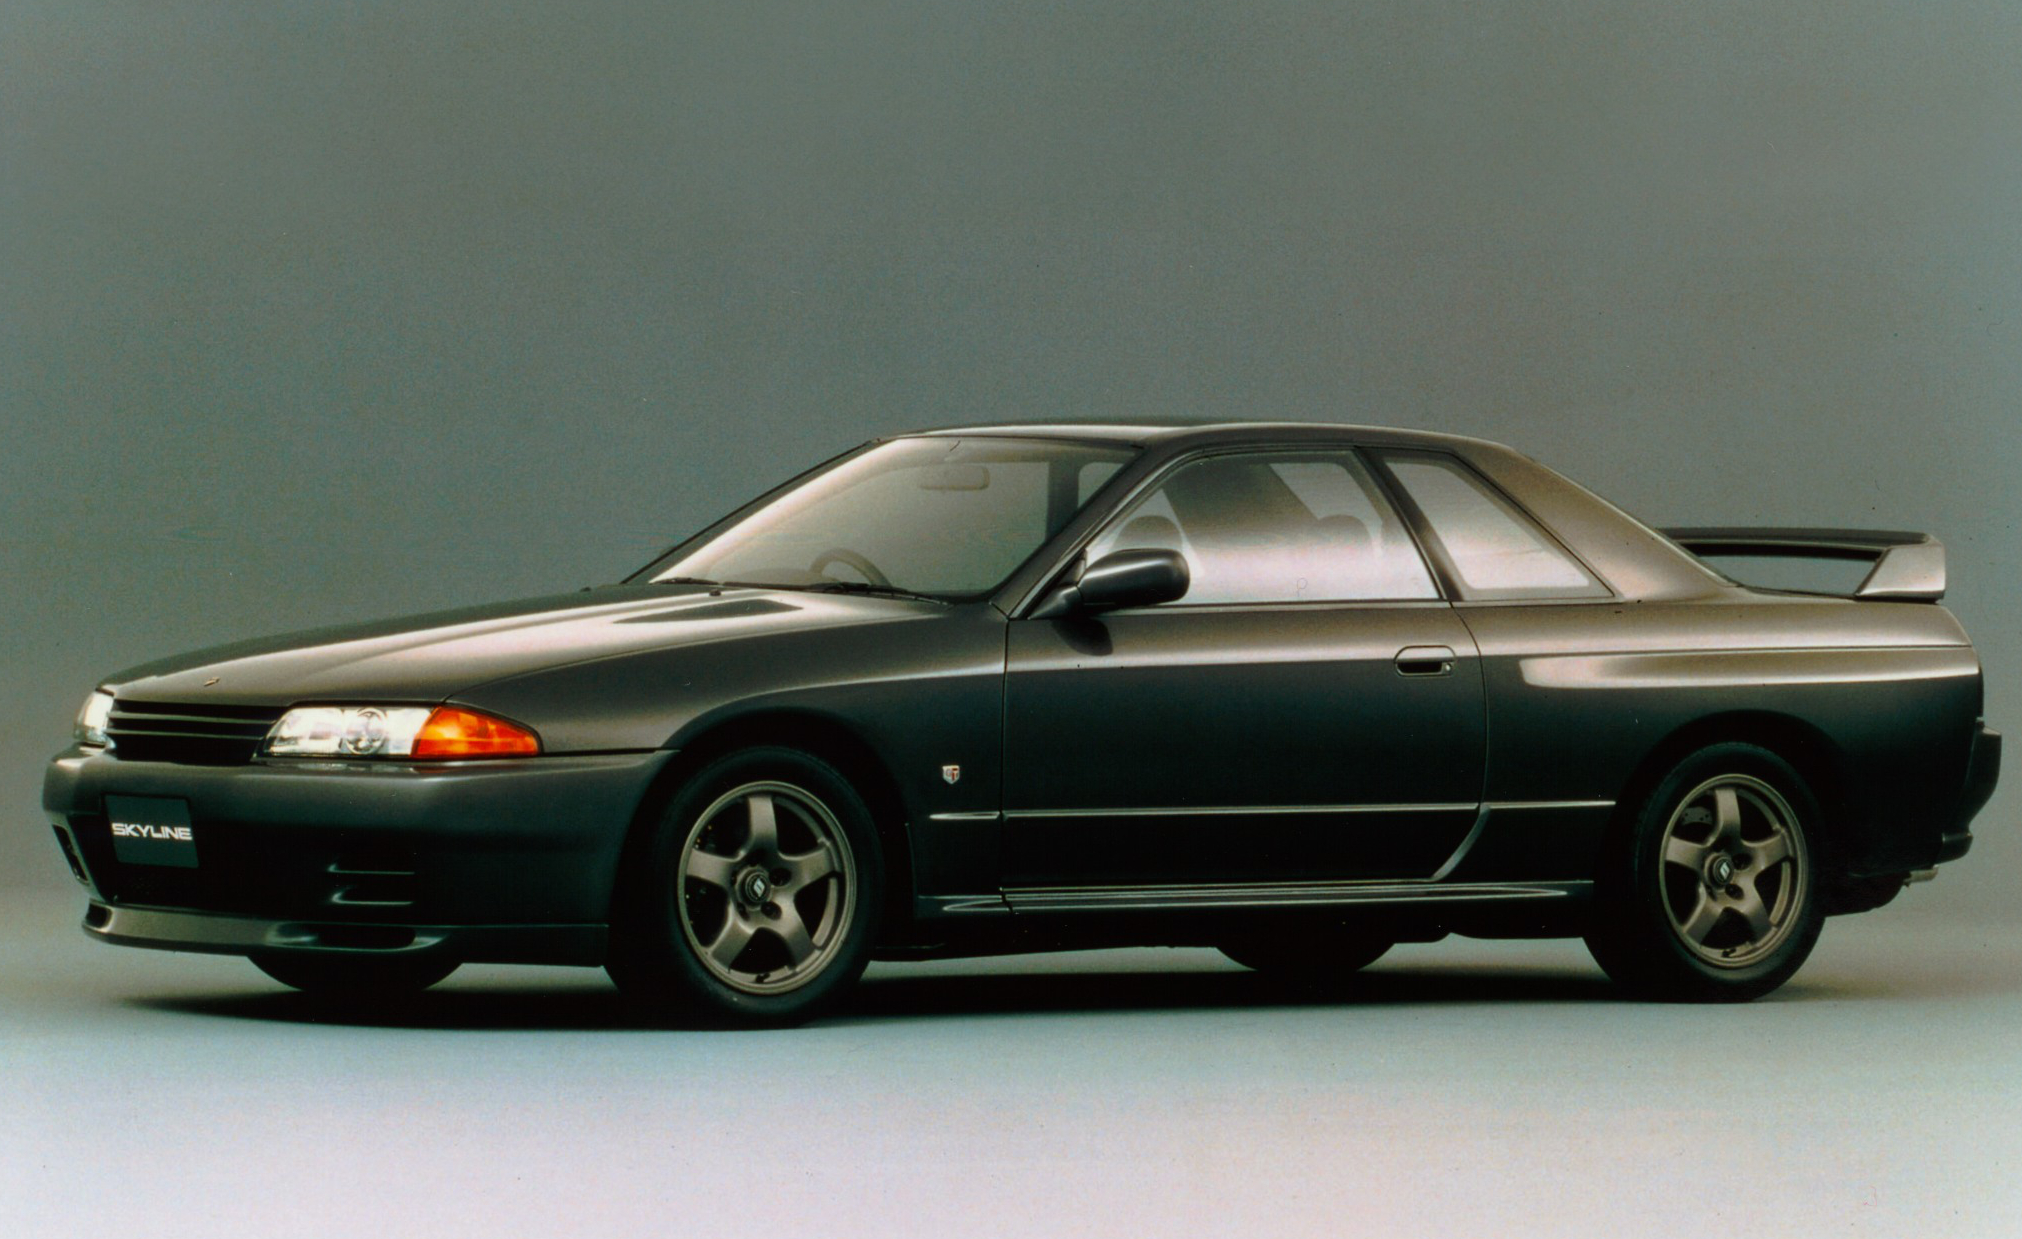 First JDM Nissan Skyline GT-R Legally Imported To U.S.